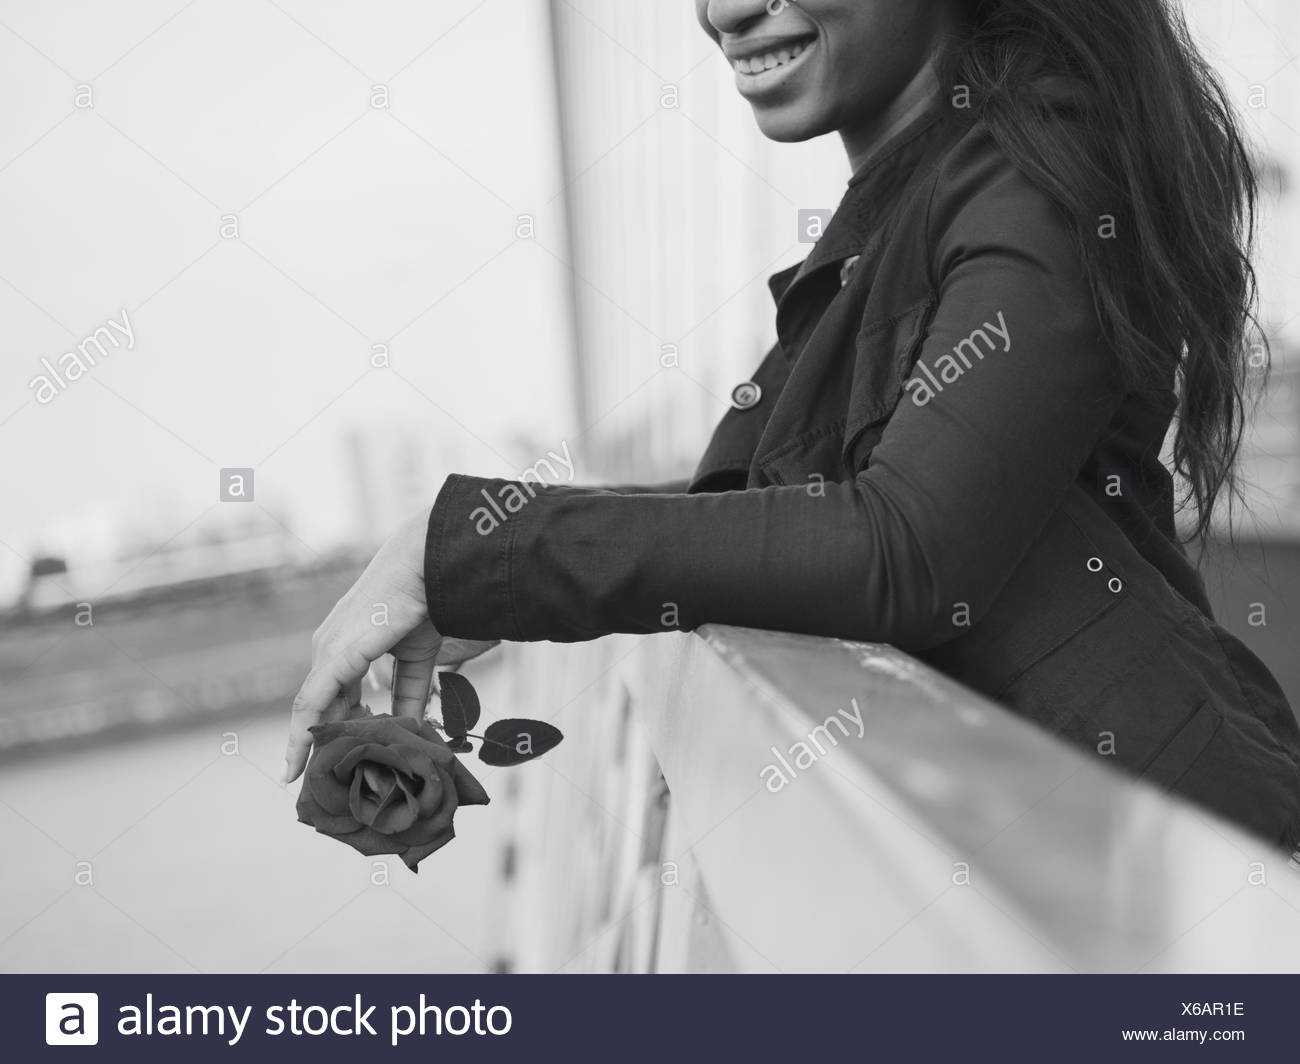 African Woman Rose Flower Love Passion Valentine Concept - Stock Image